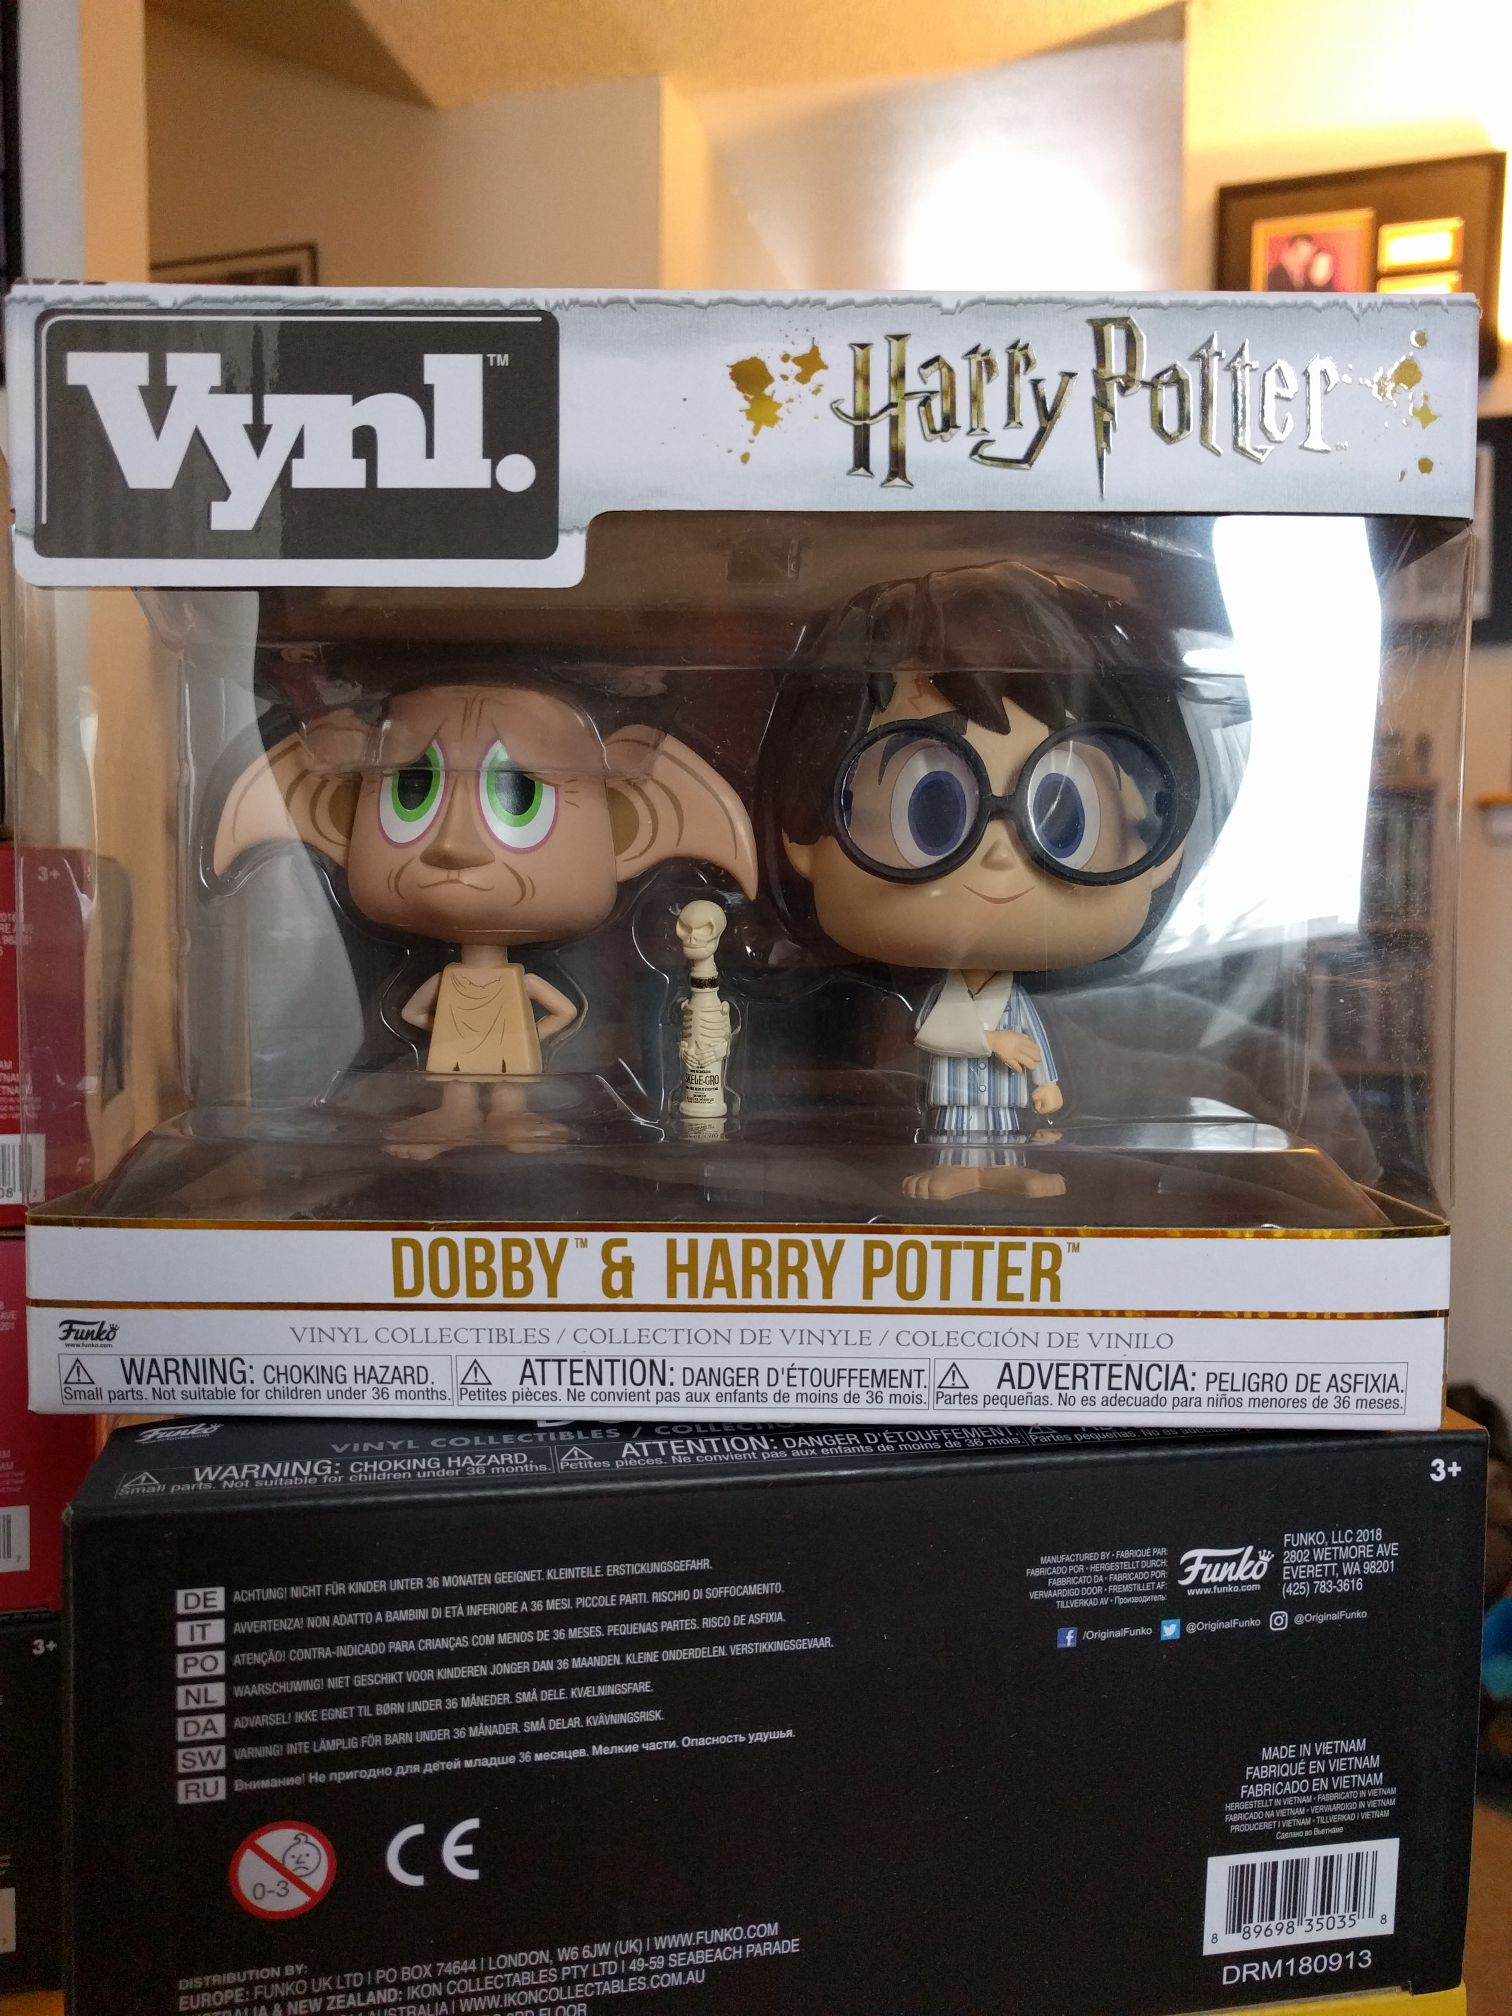 Dobby & Harry Potter Funko - Vynl front image (front cover)